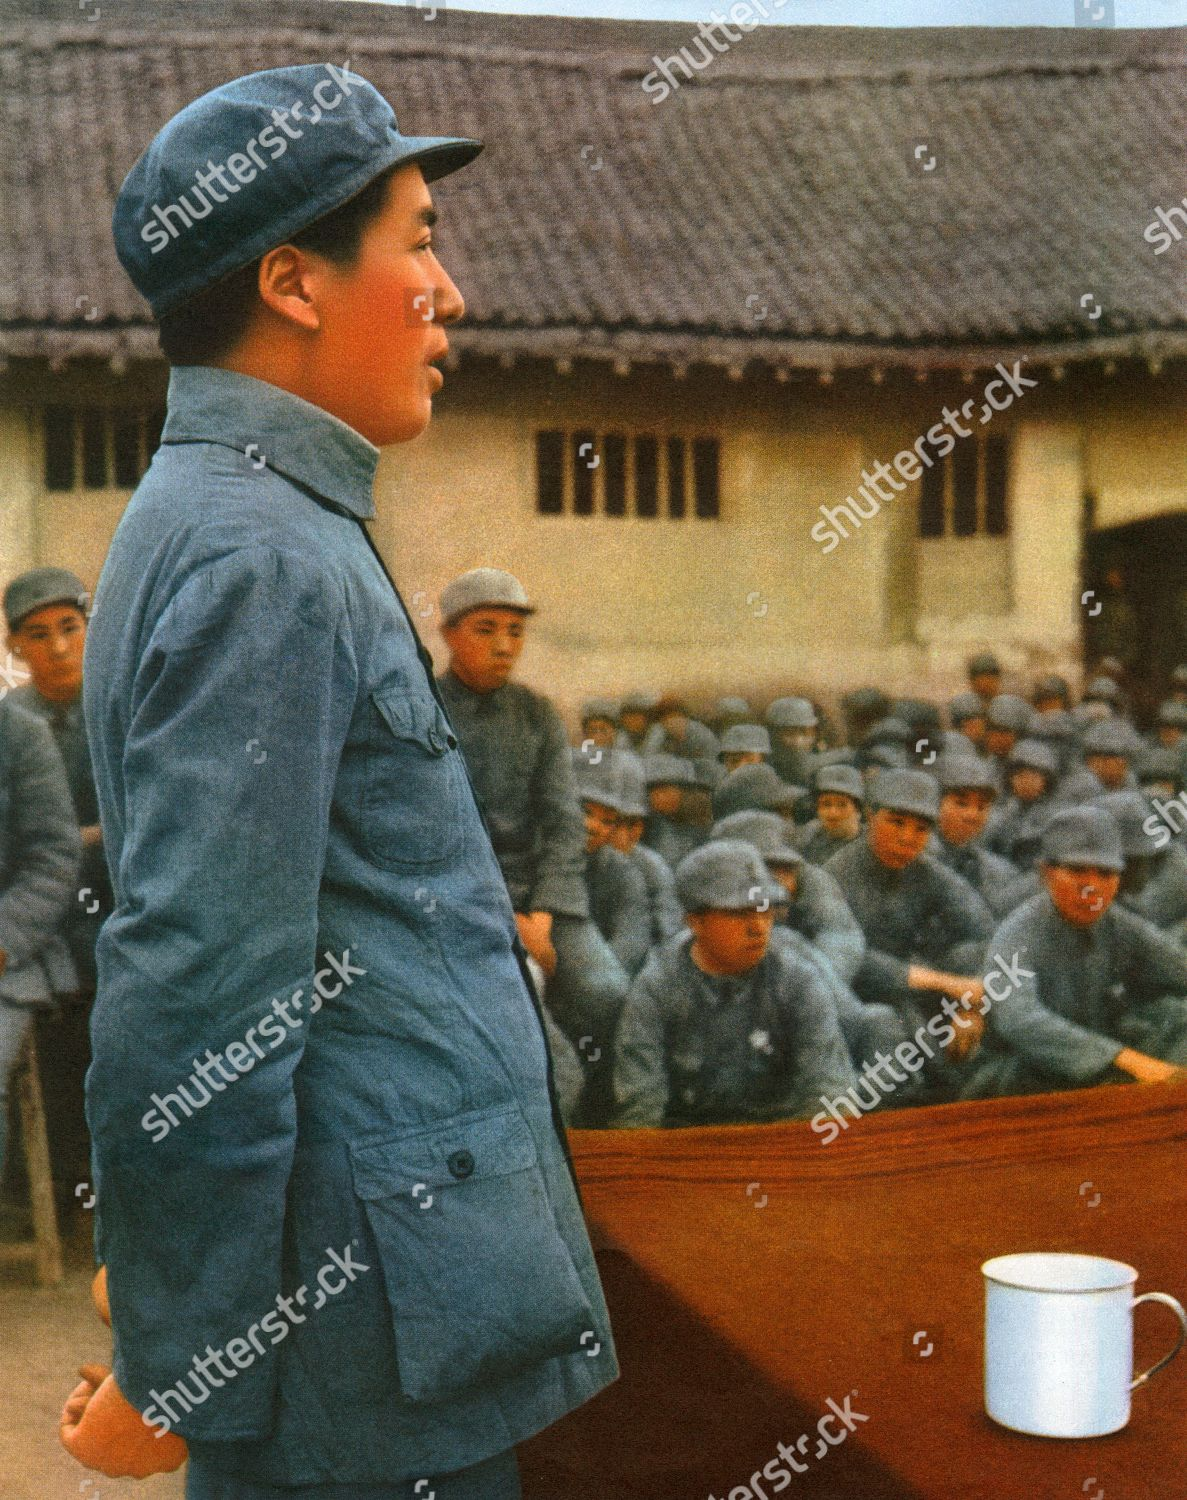 99bdf5338ef Mao Zedong - Founding Father of People s Republic of China Stock Image by  Historia for editorial use